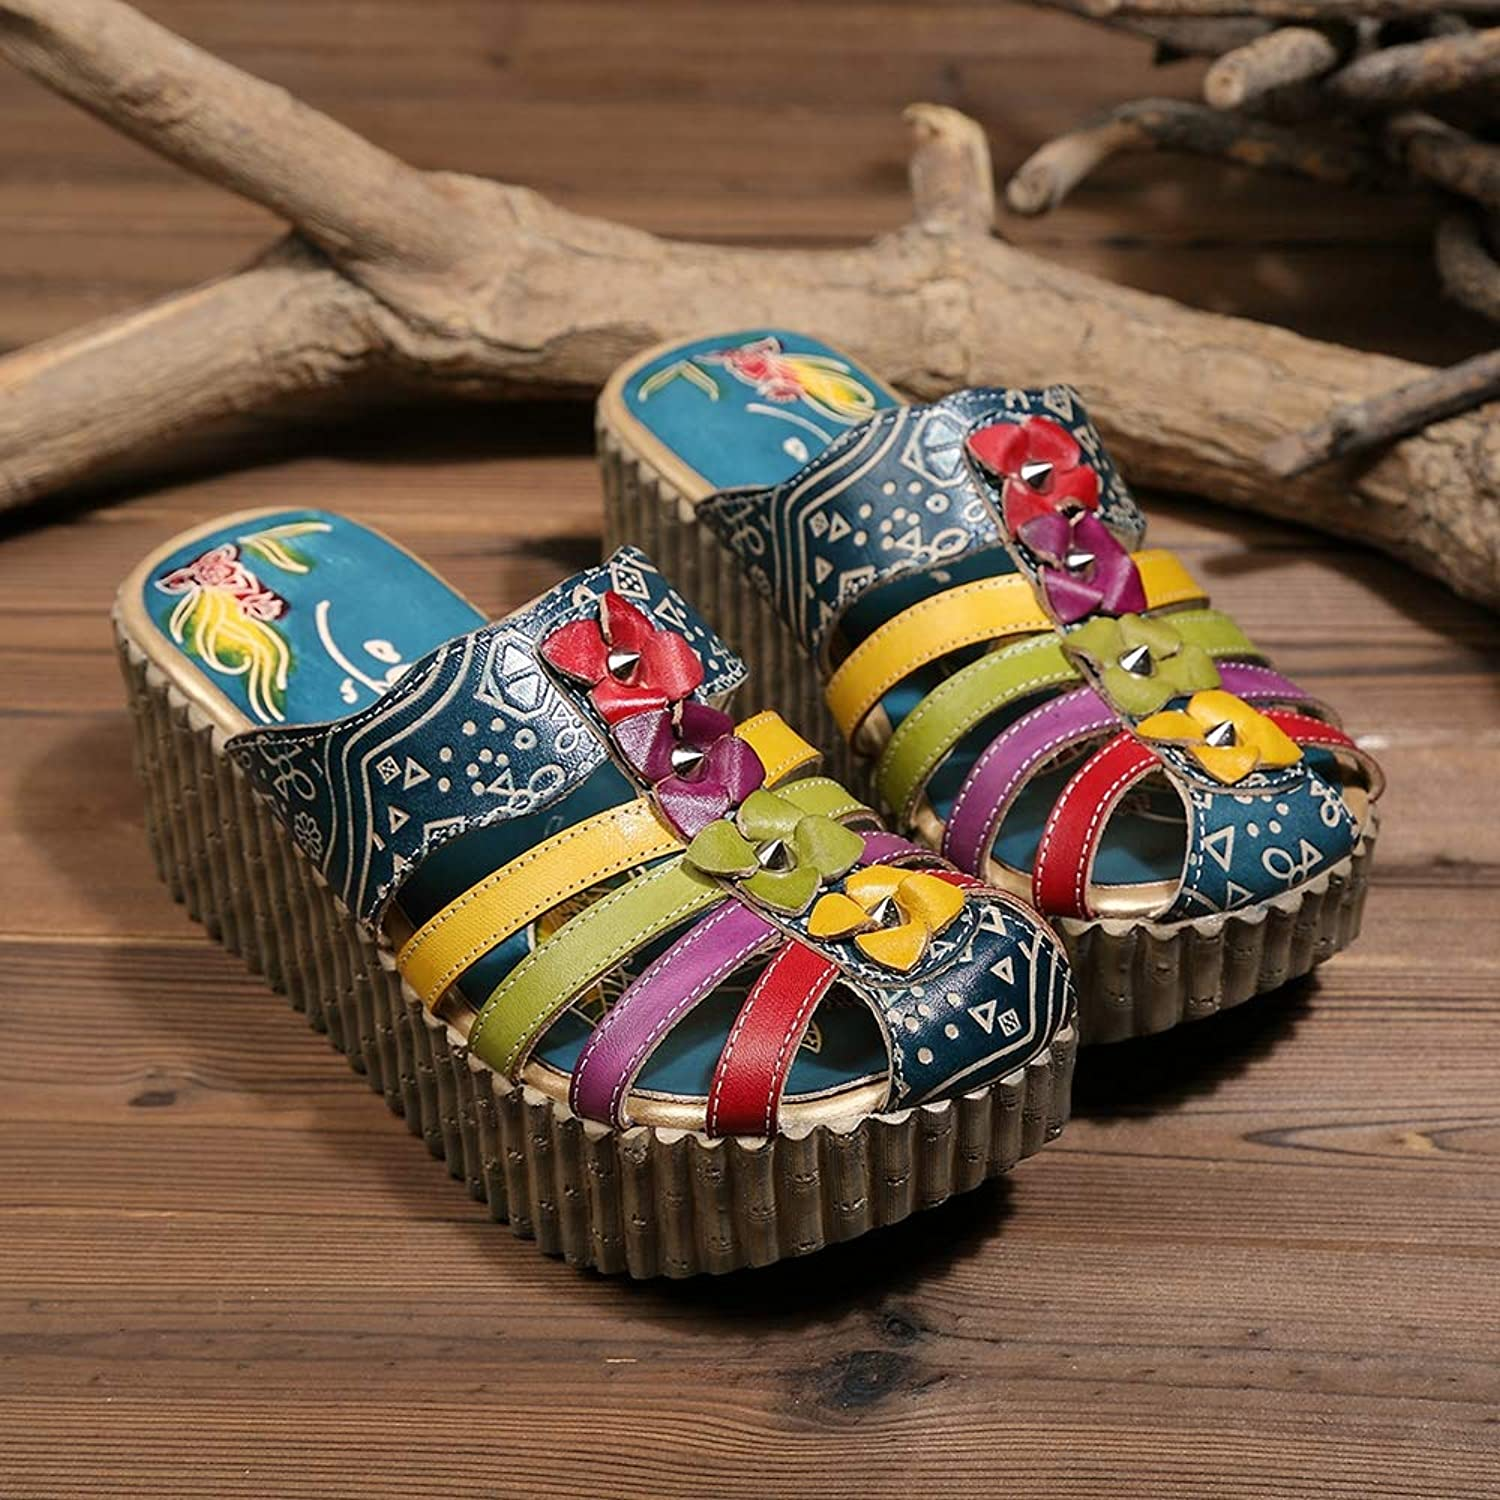 Leather Slipper, Women's Oxford Slipper Vintage Slip-Ons colorful Flower Backless Loafer Sandals,6MUS